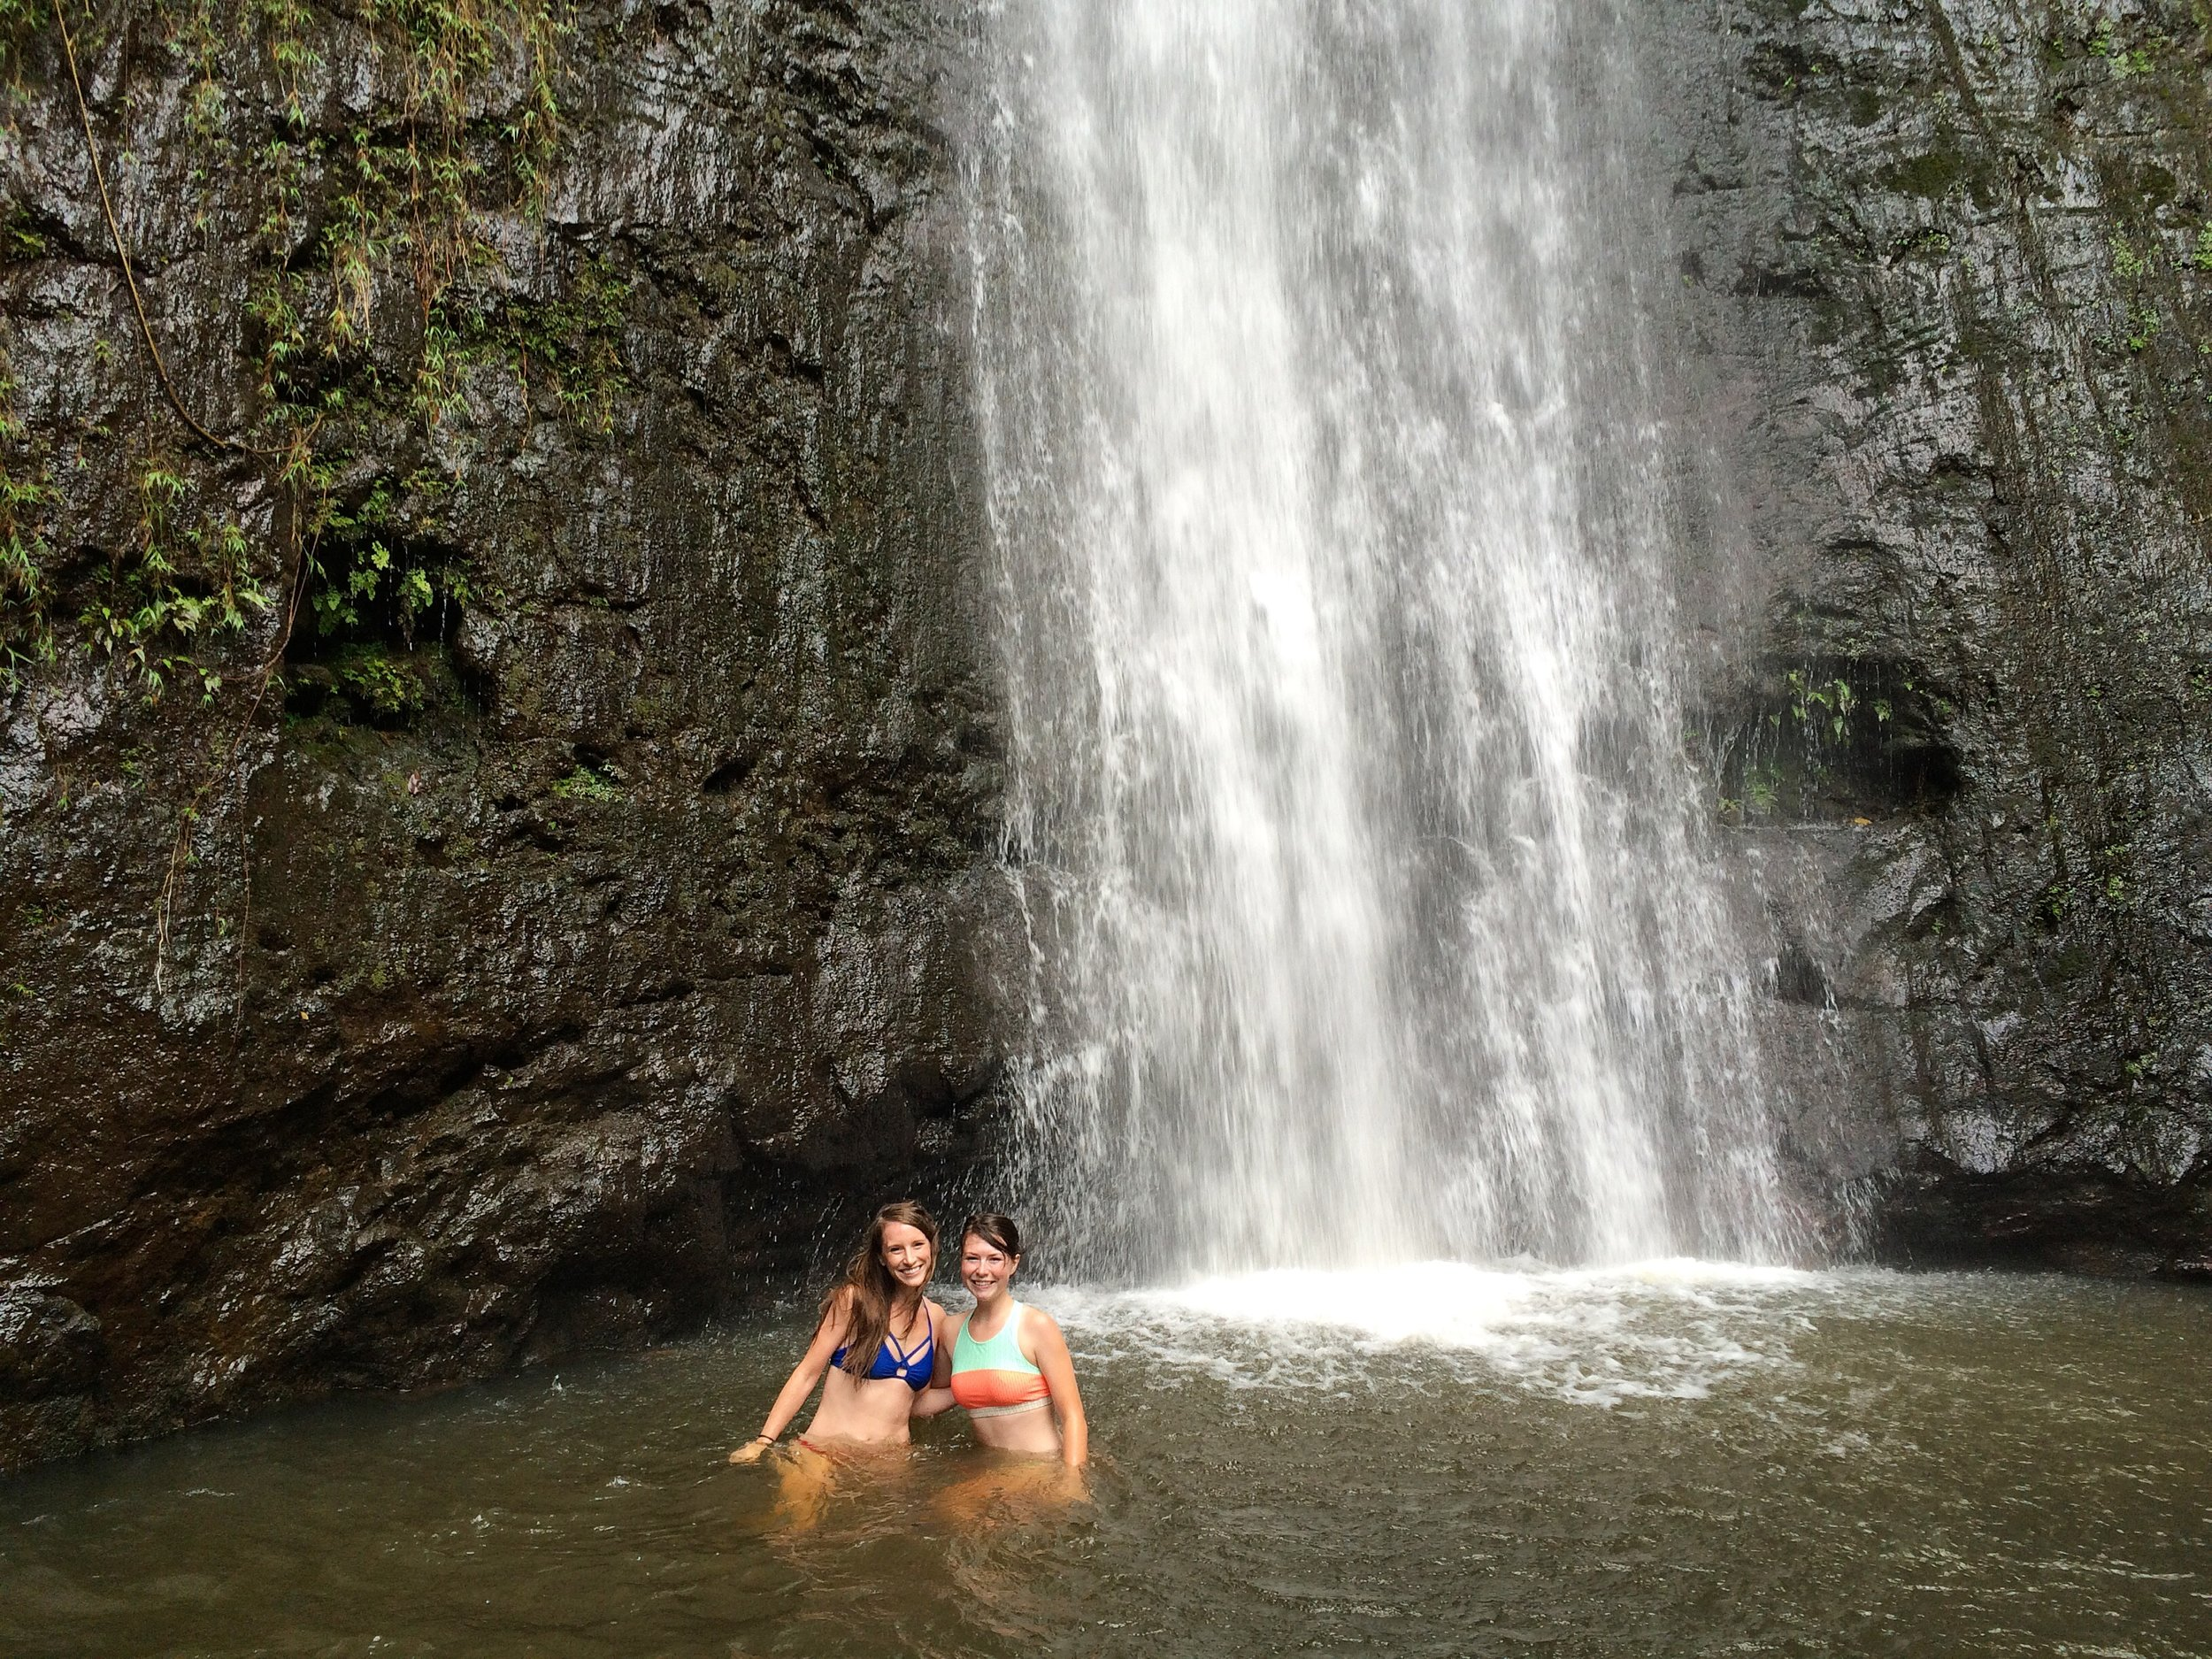 We chased waterfalls.